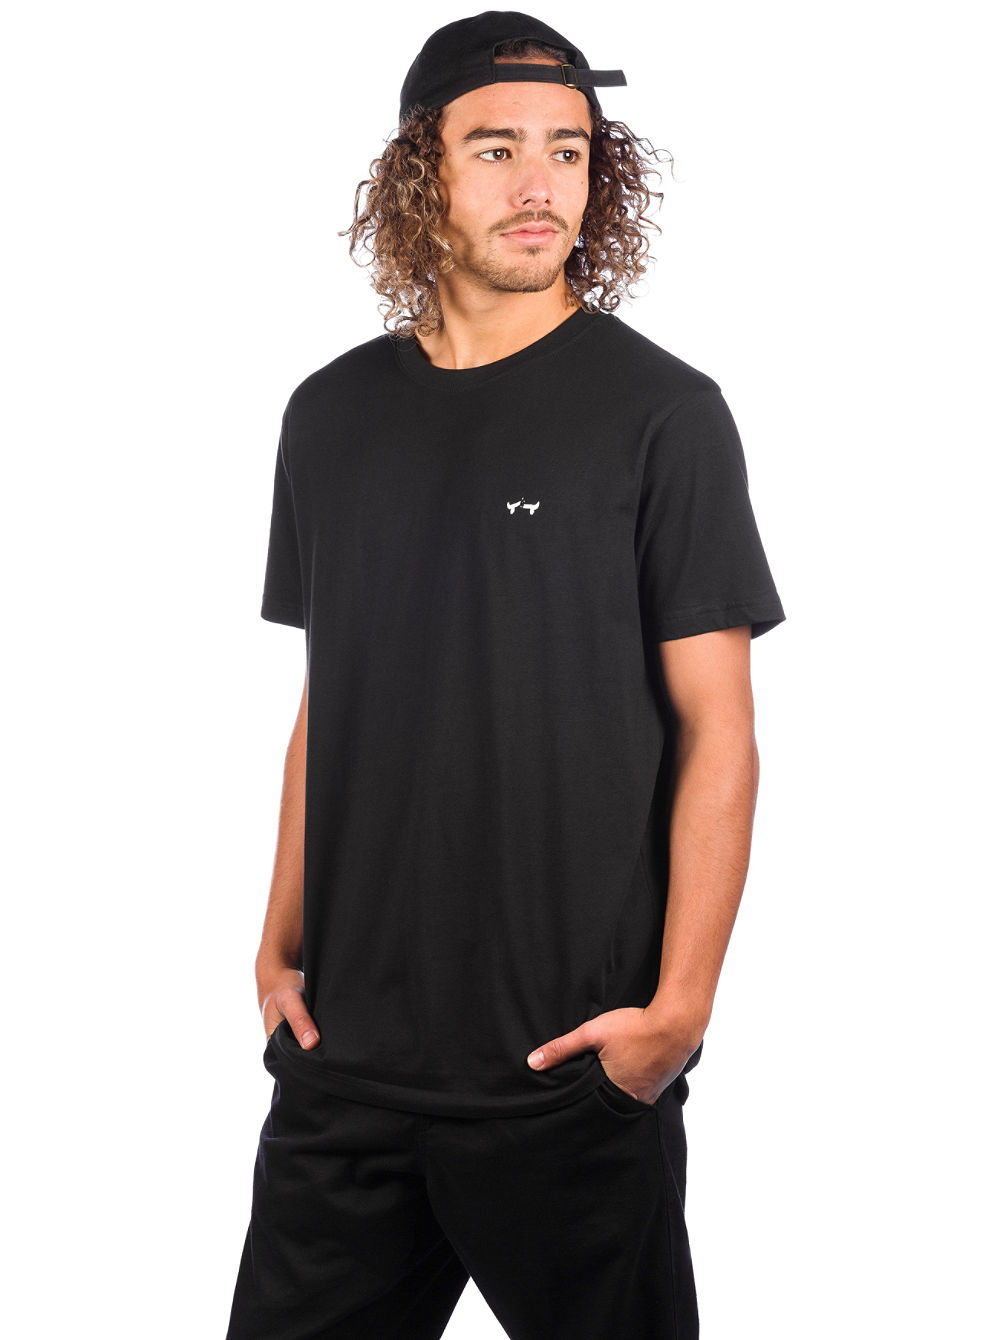 BT Skate T-Shrit